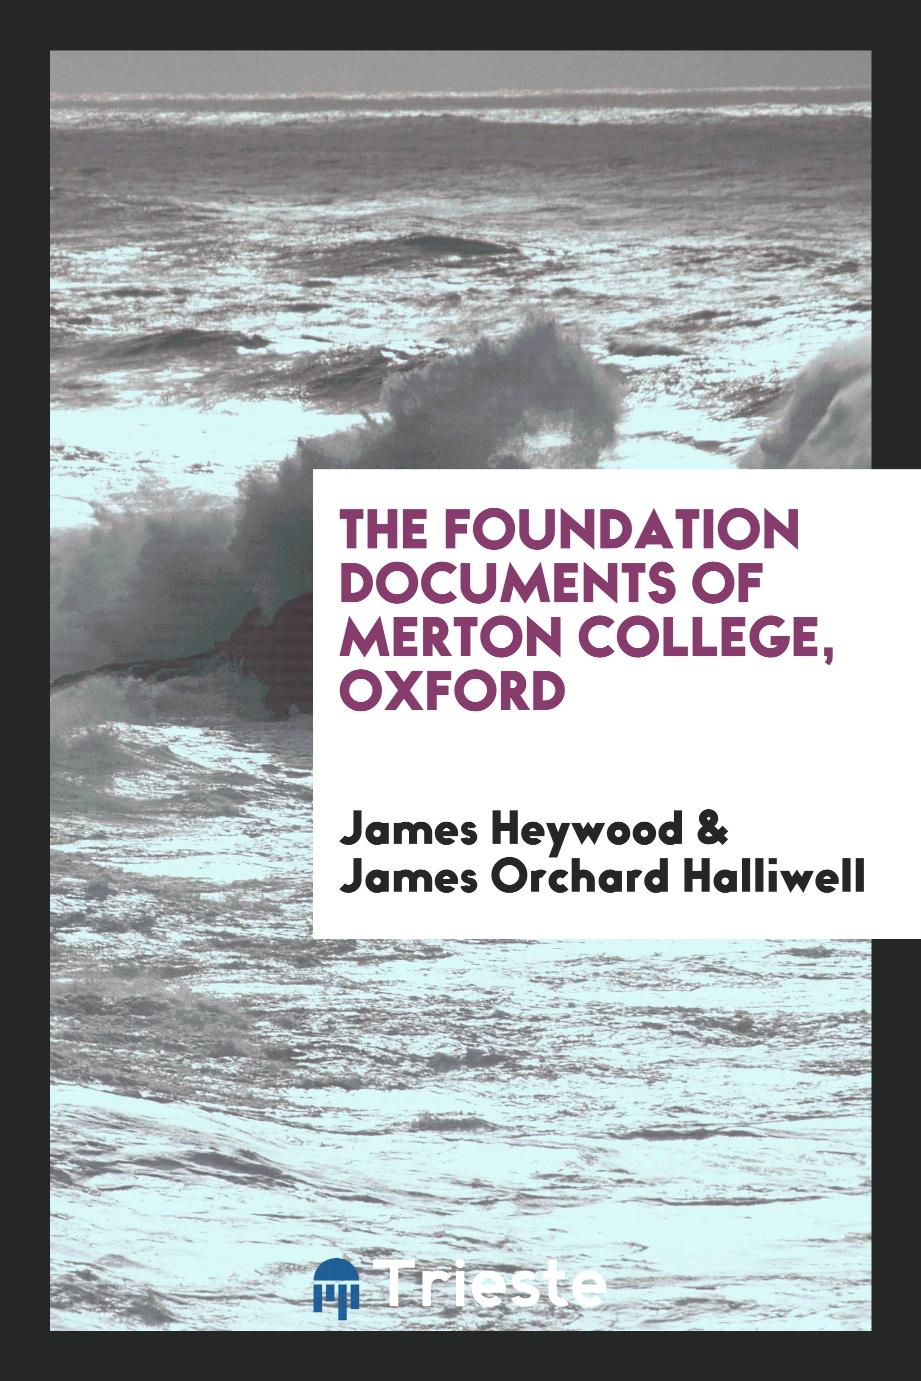 The foundation documents of Merton college, Oxford